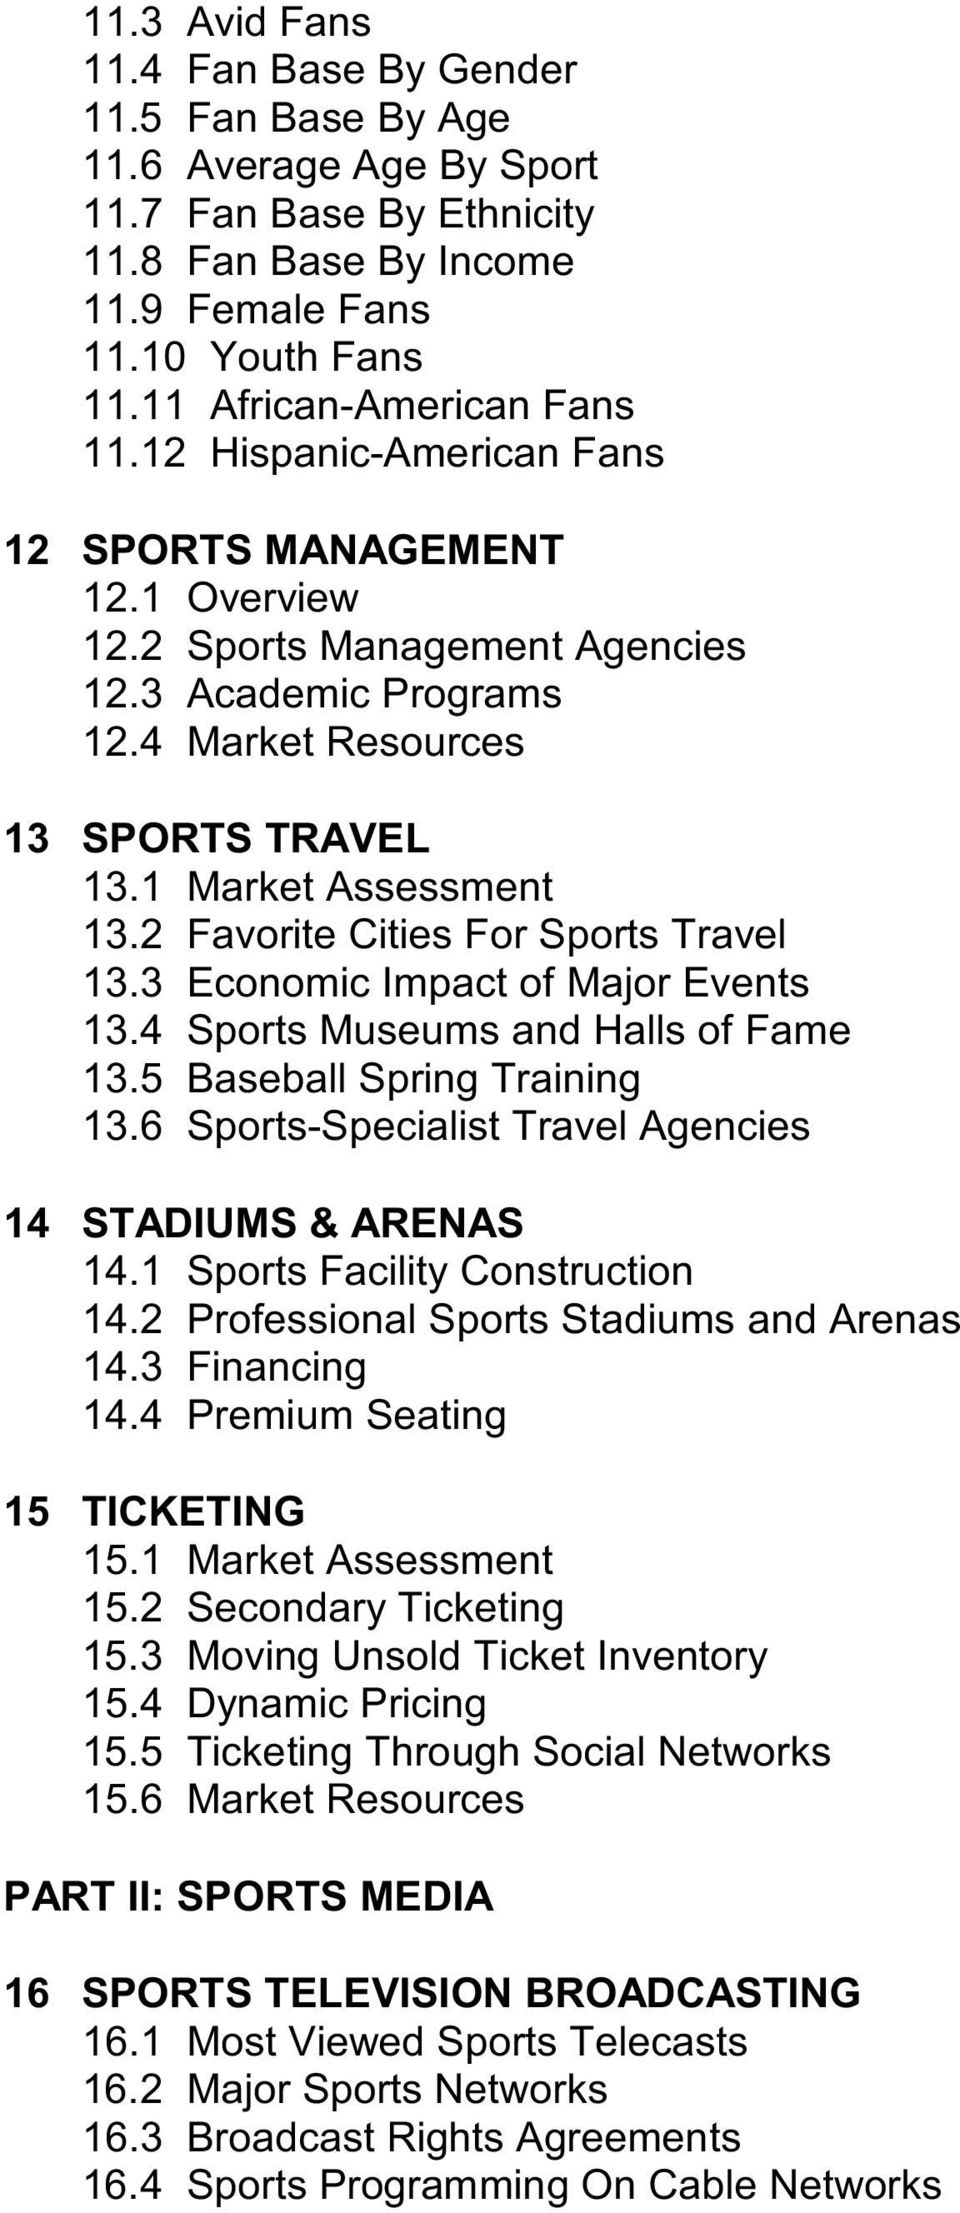 1 Market Assessment 13.2 Favorite Cities For Sports Travel 13.3 Economic Impact of Major Events 13.4 Sports Museums and Halls of Fame 13.5 Baseball Spring Training 13.